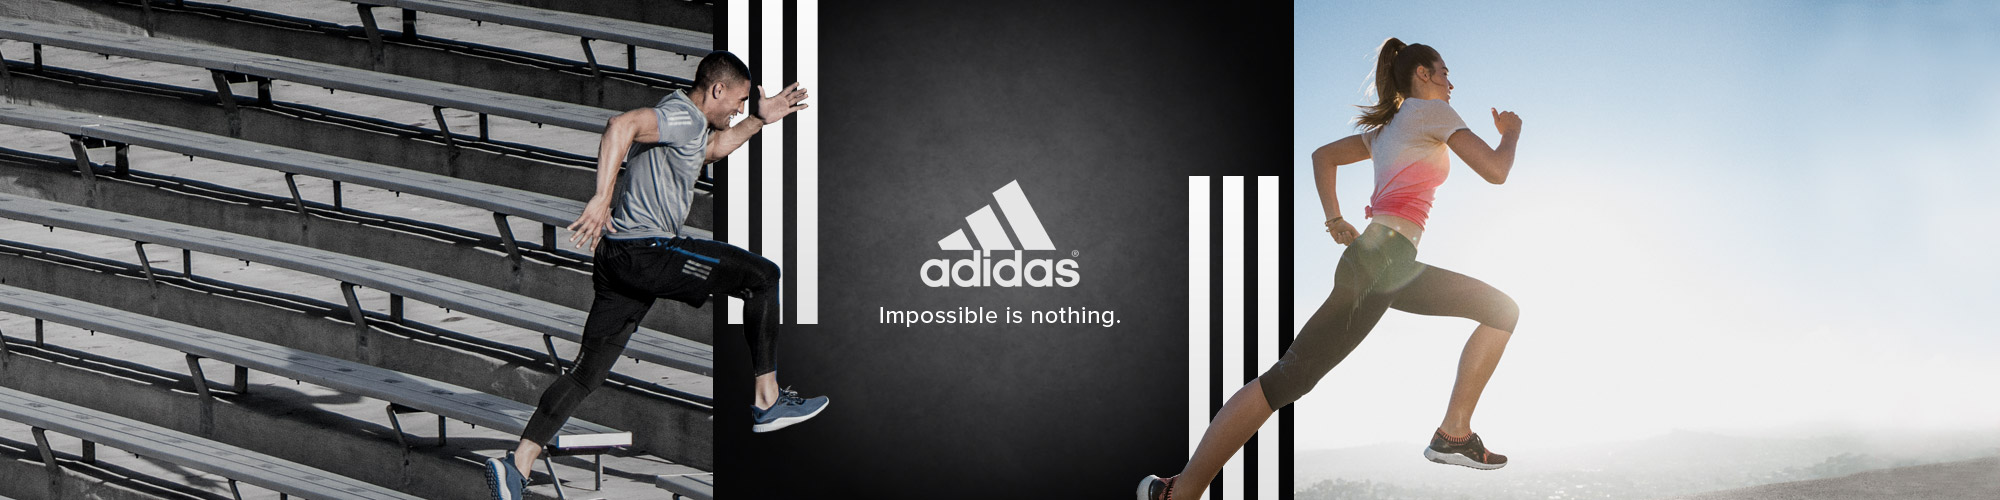 adidas running apparel and shoes